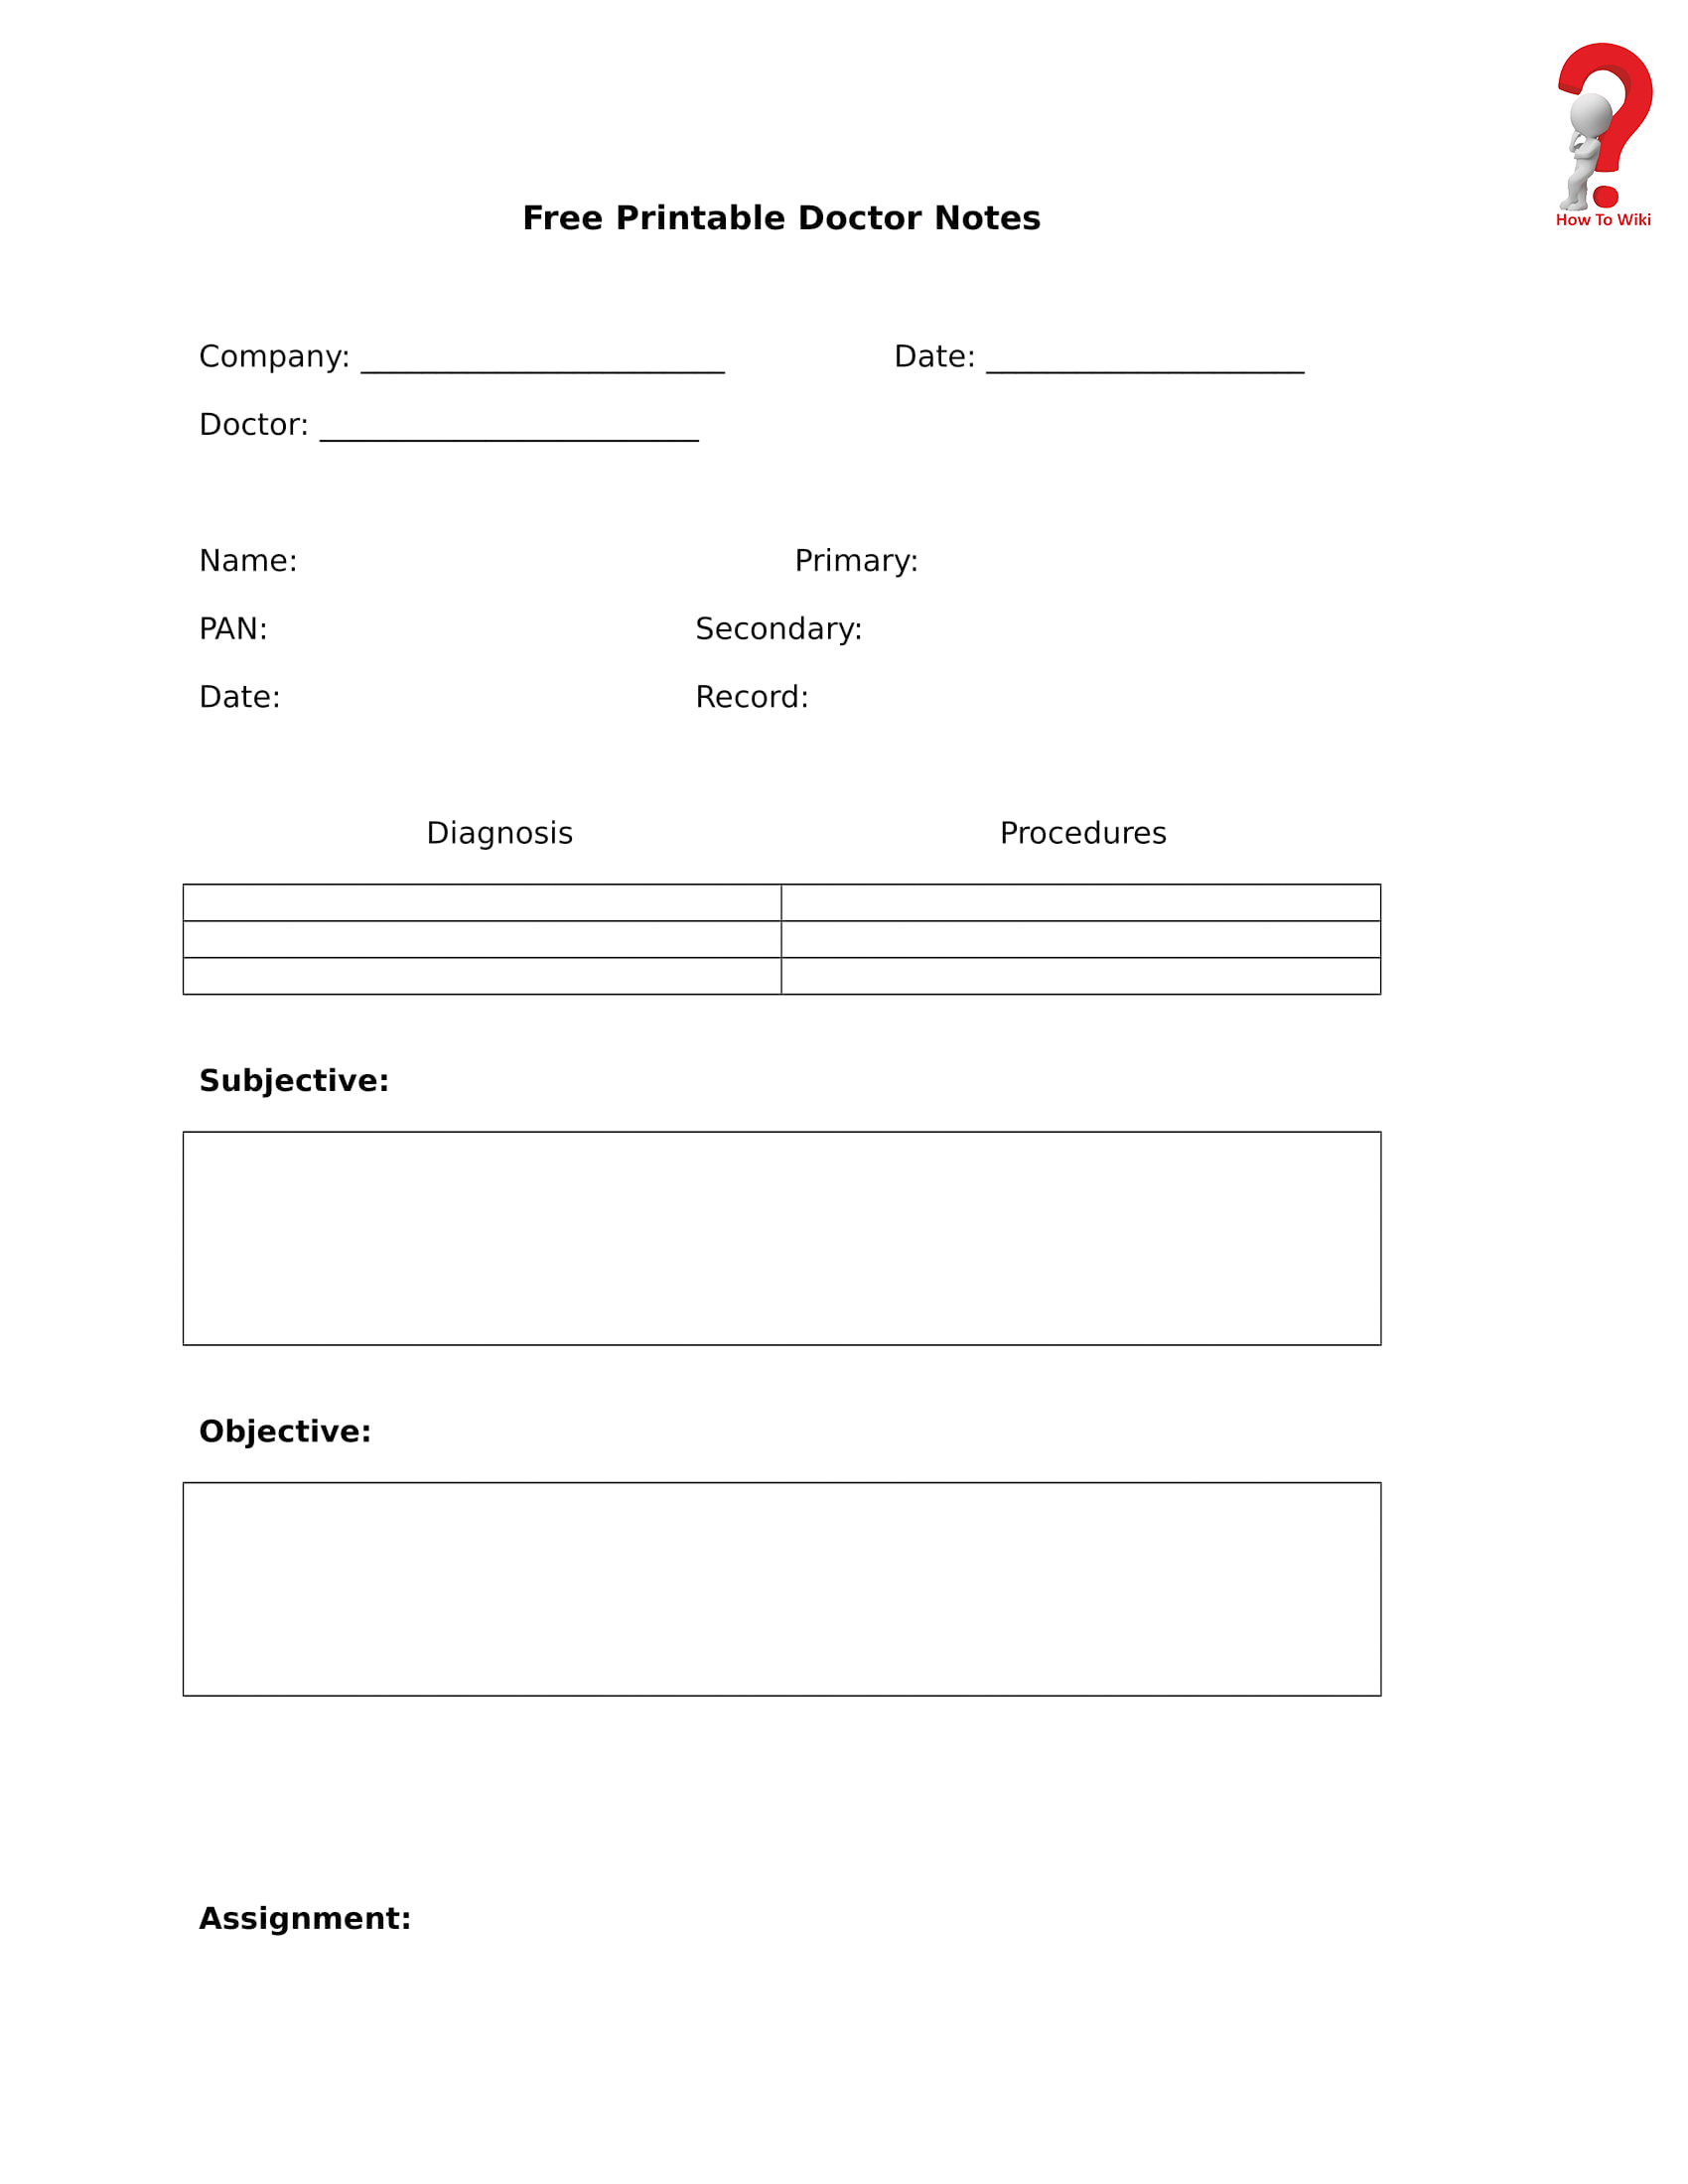 How To Make A Fake Doctor's Note   How To Wiki - Free Printable Doctor Notes